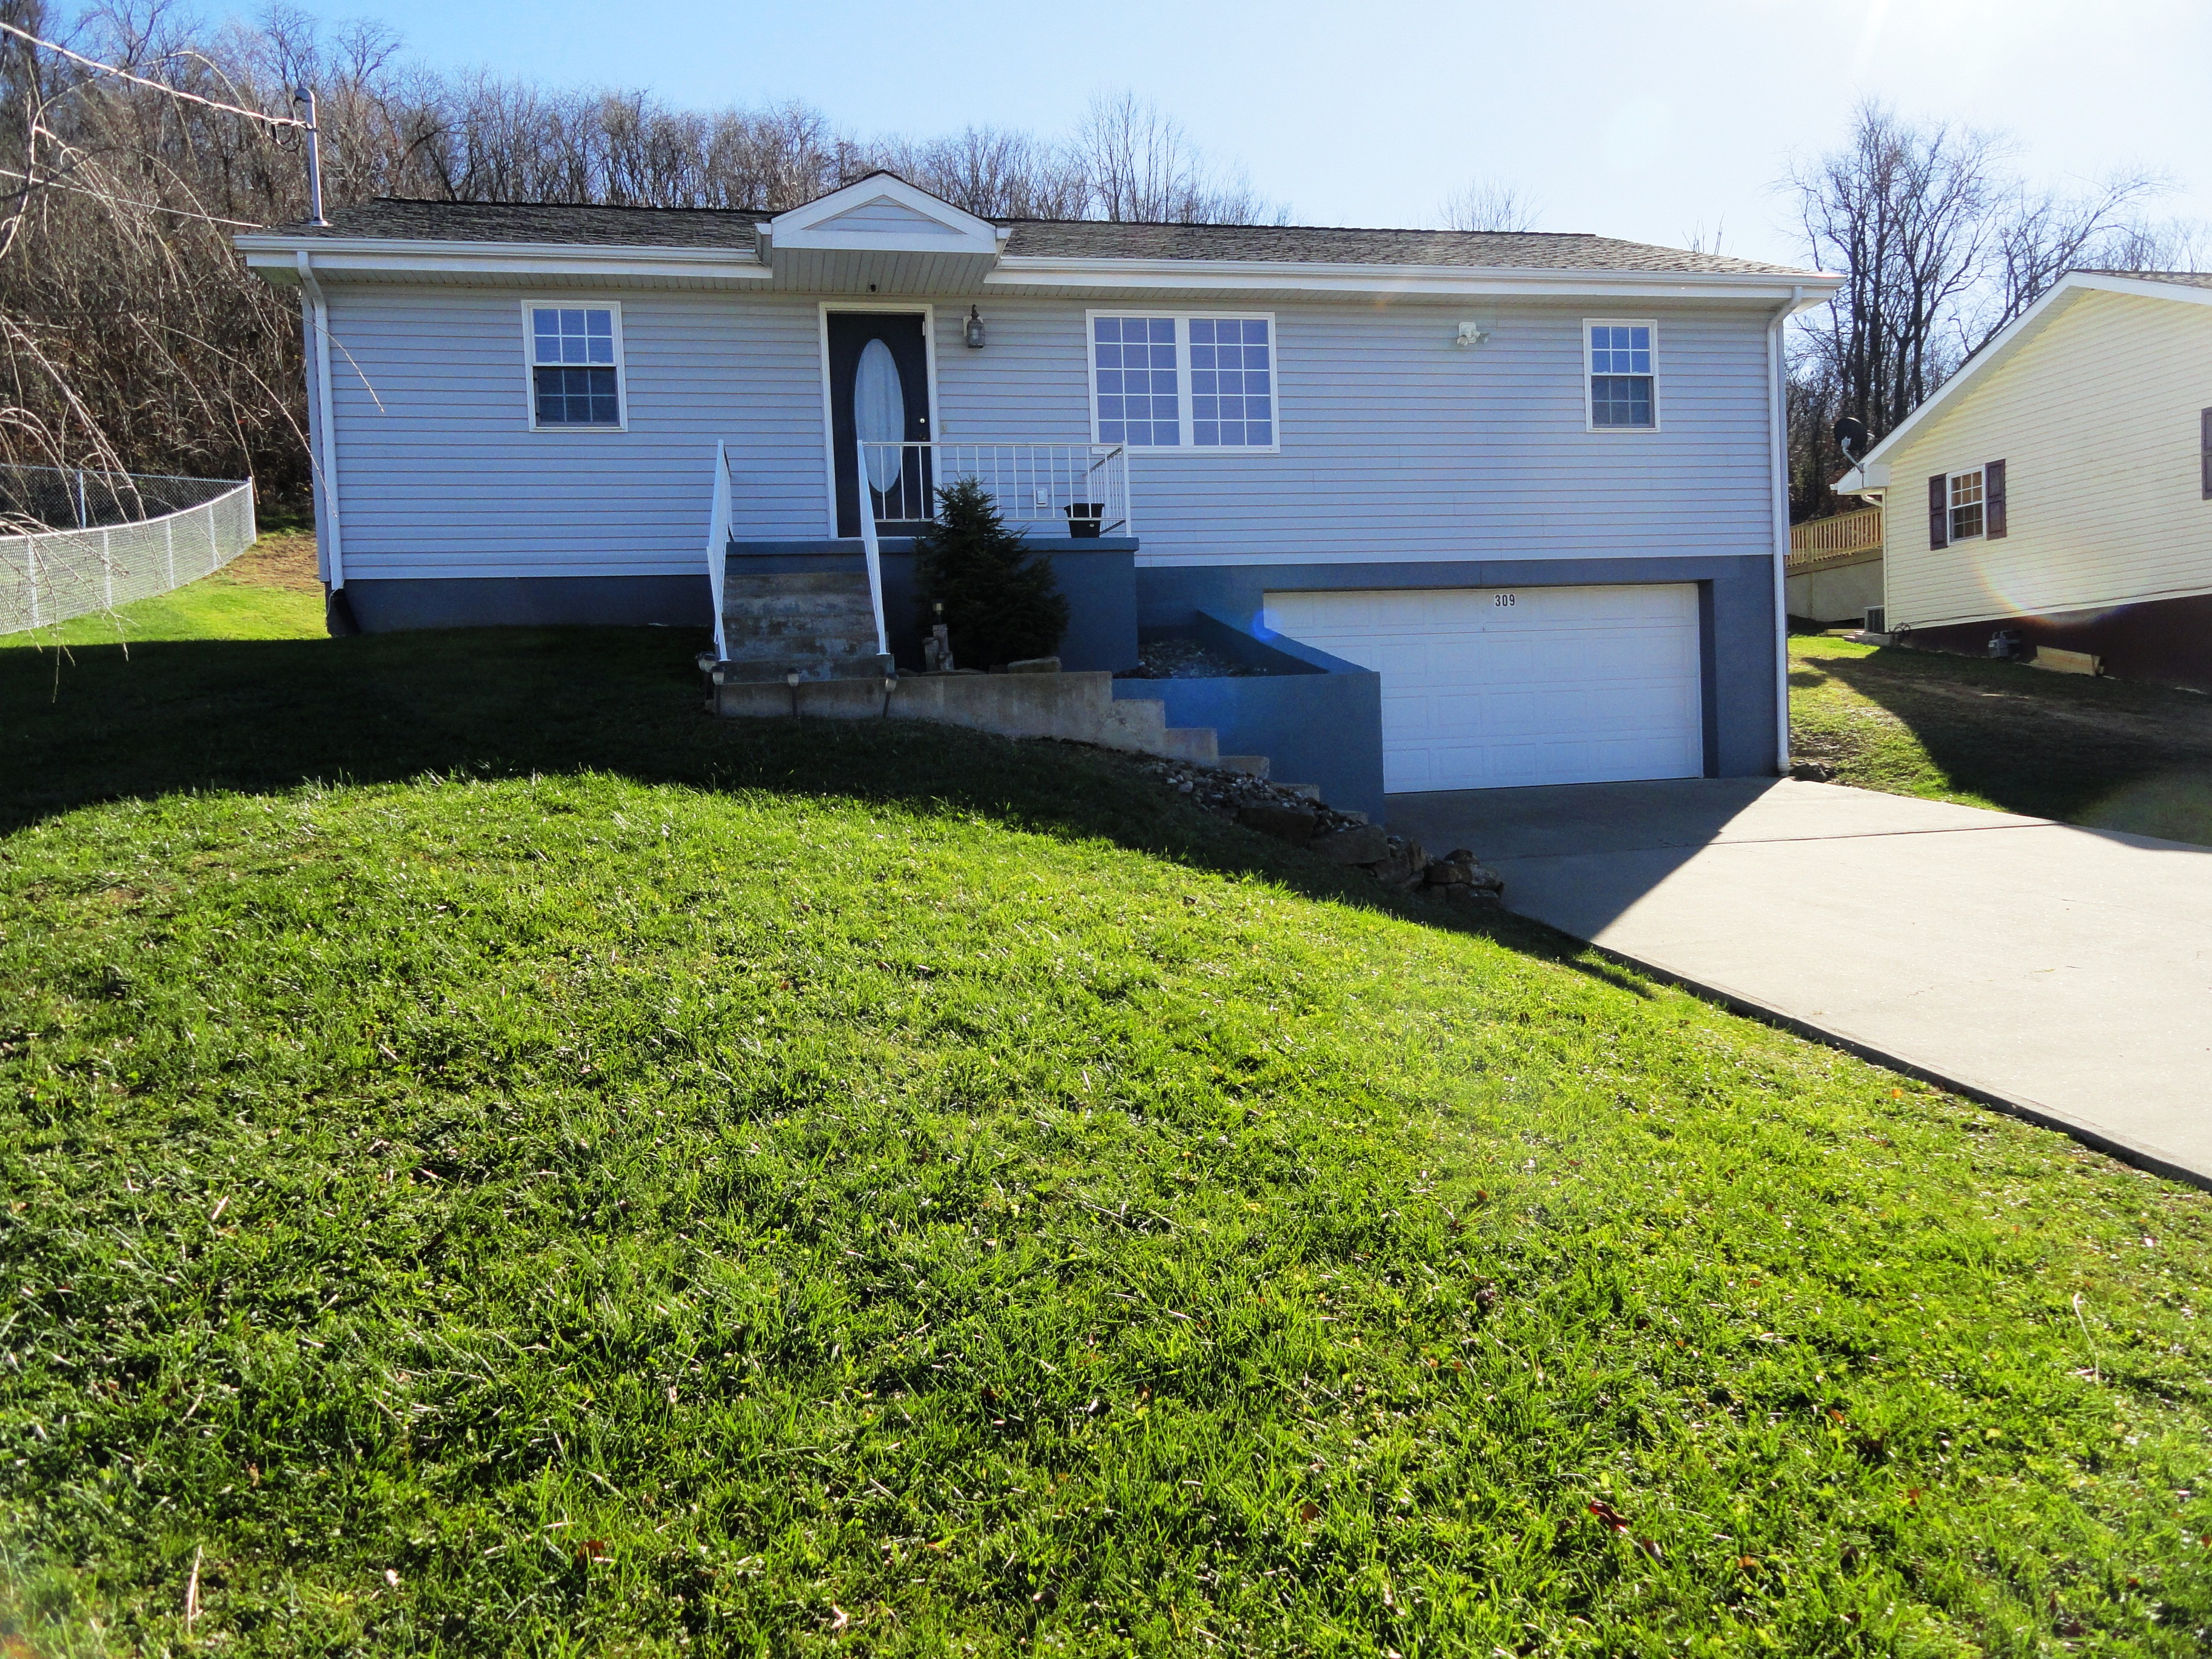 309 Blossom Ave, Newell, West Virginia 26050